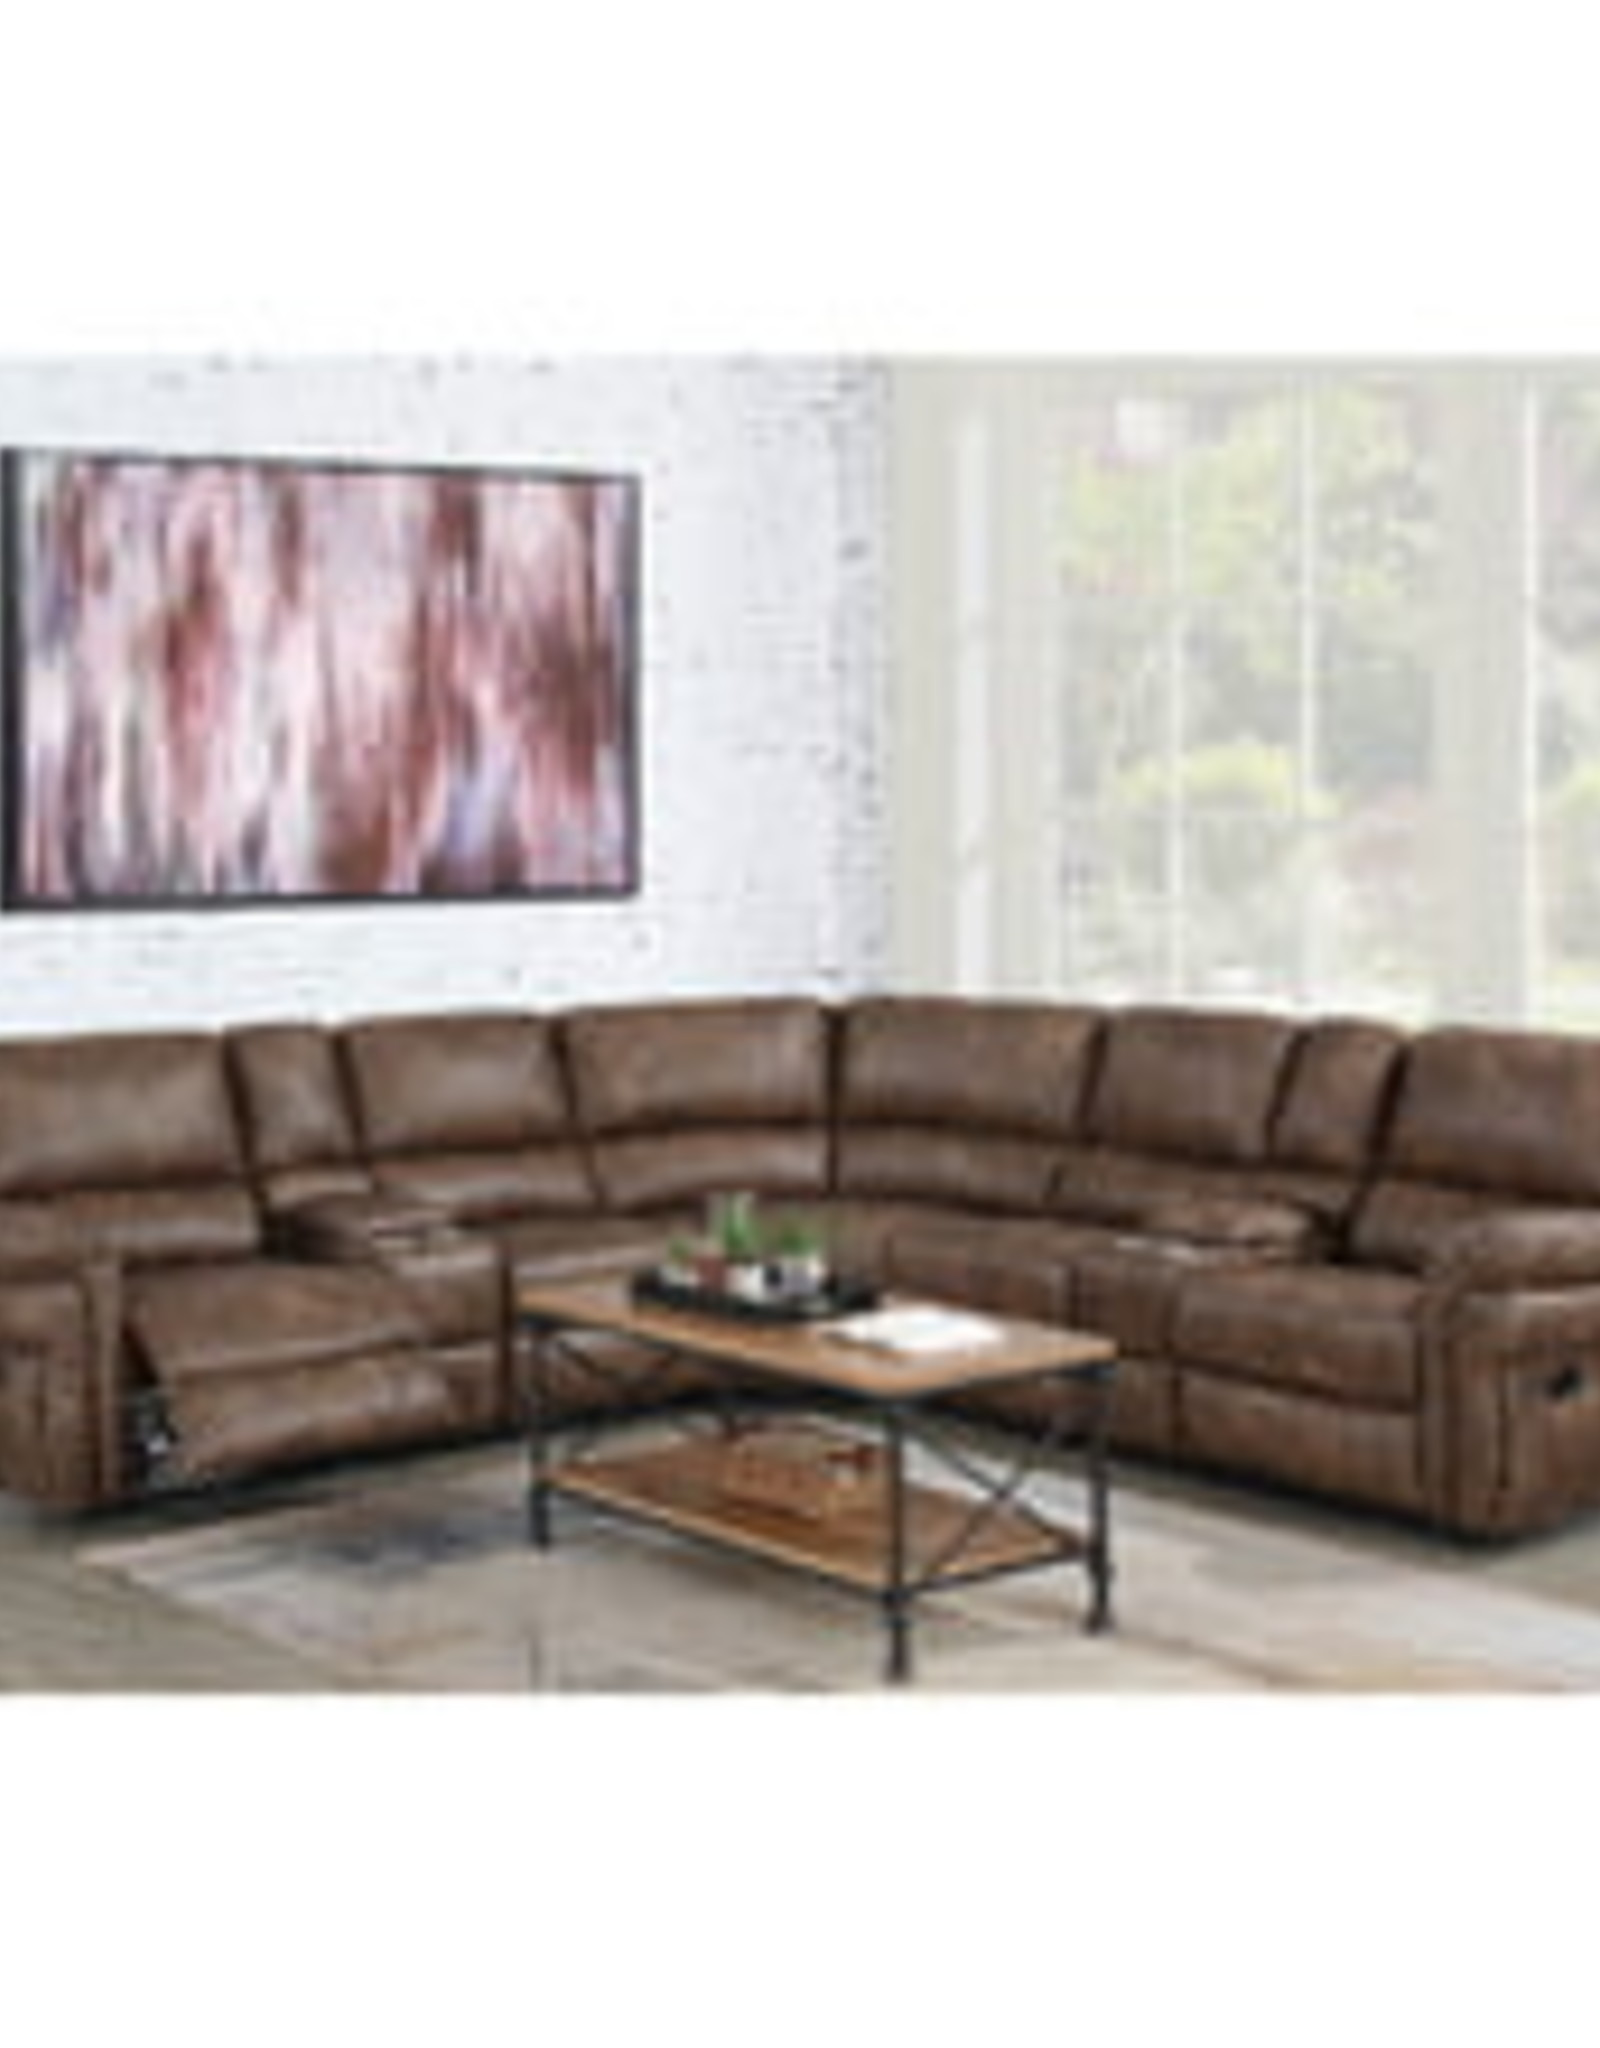 Elements Cardinal Toffee Reclining Sectional